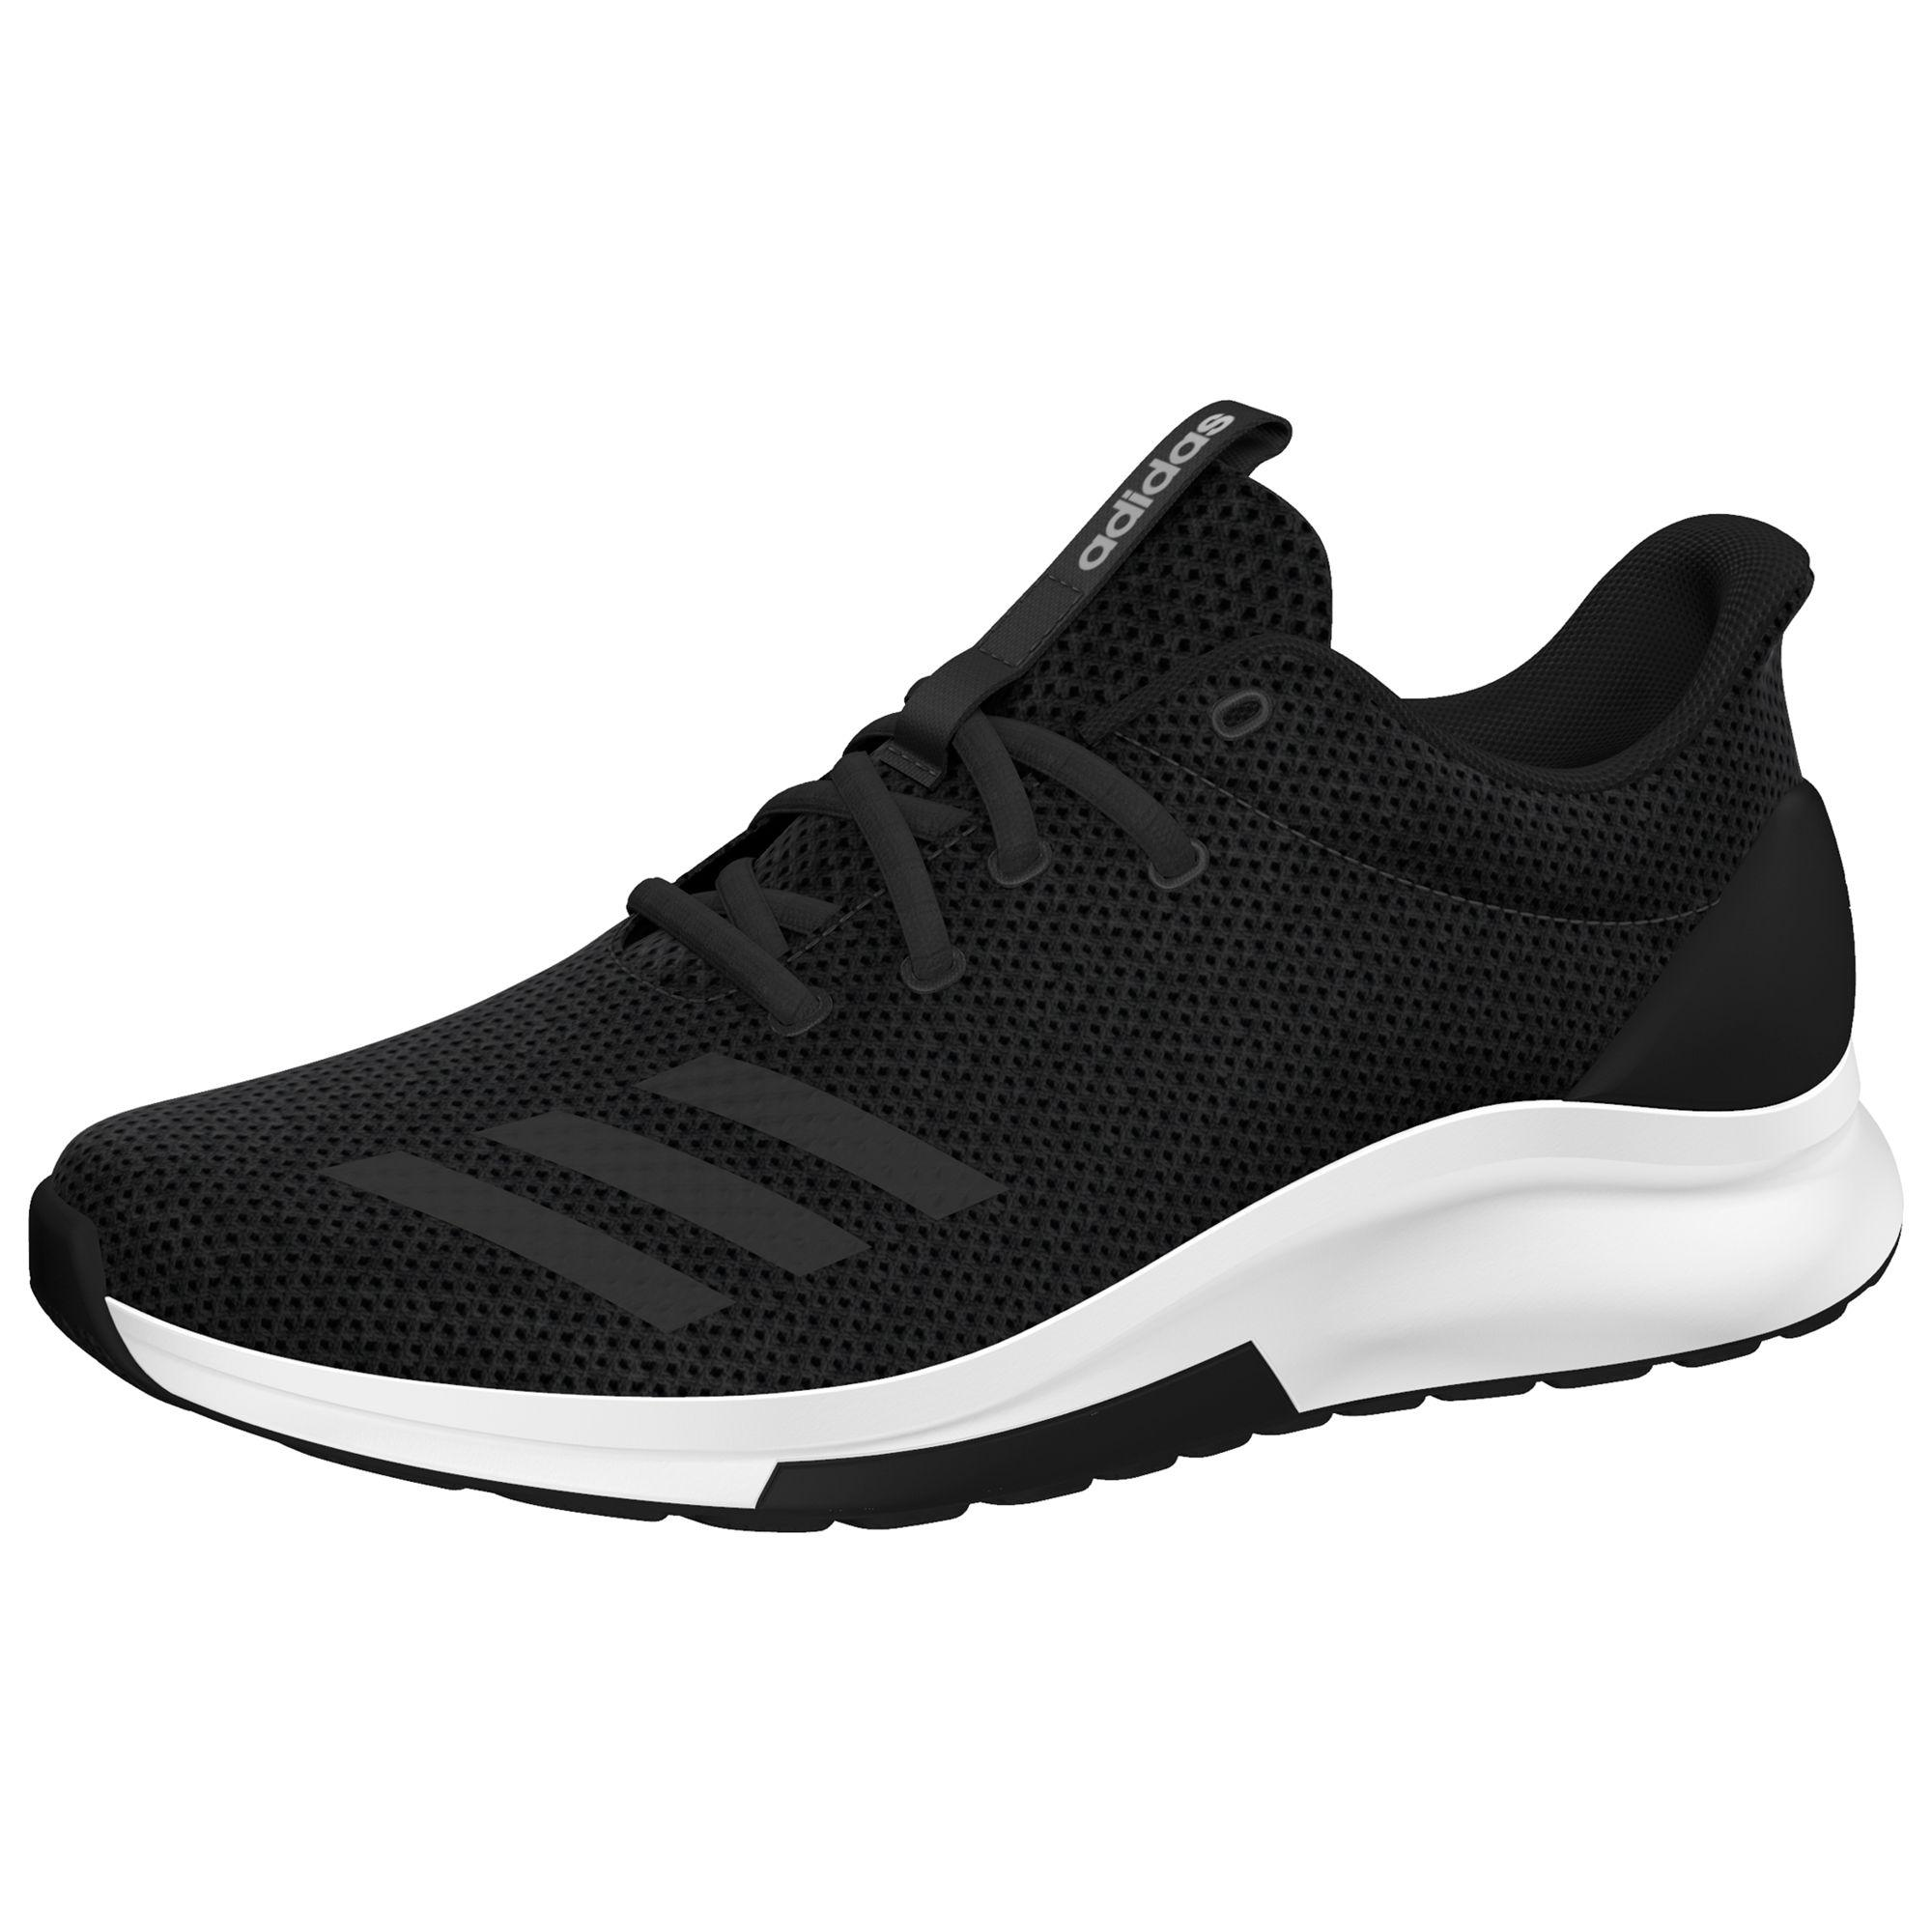 c2562b4117d5bb adidas Puremotion Women s Running Trainers in Black - Lyst